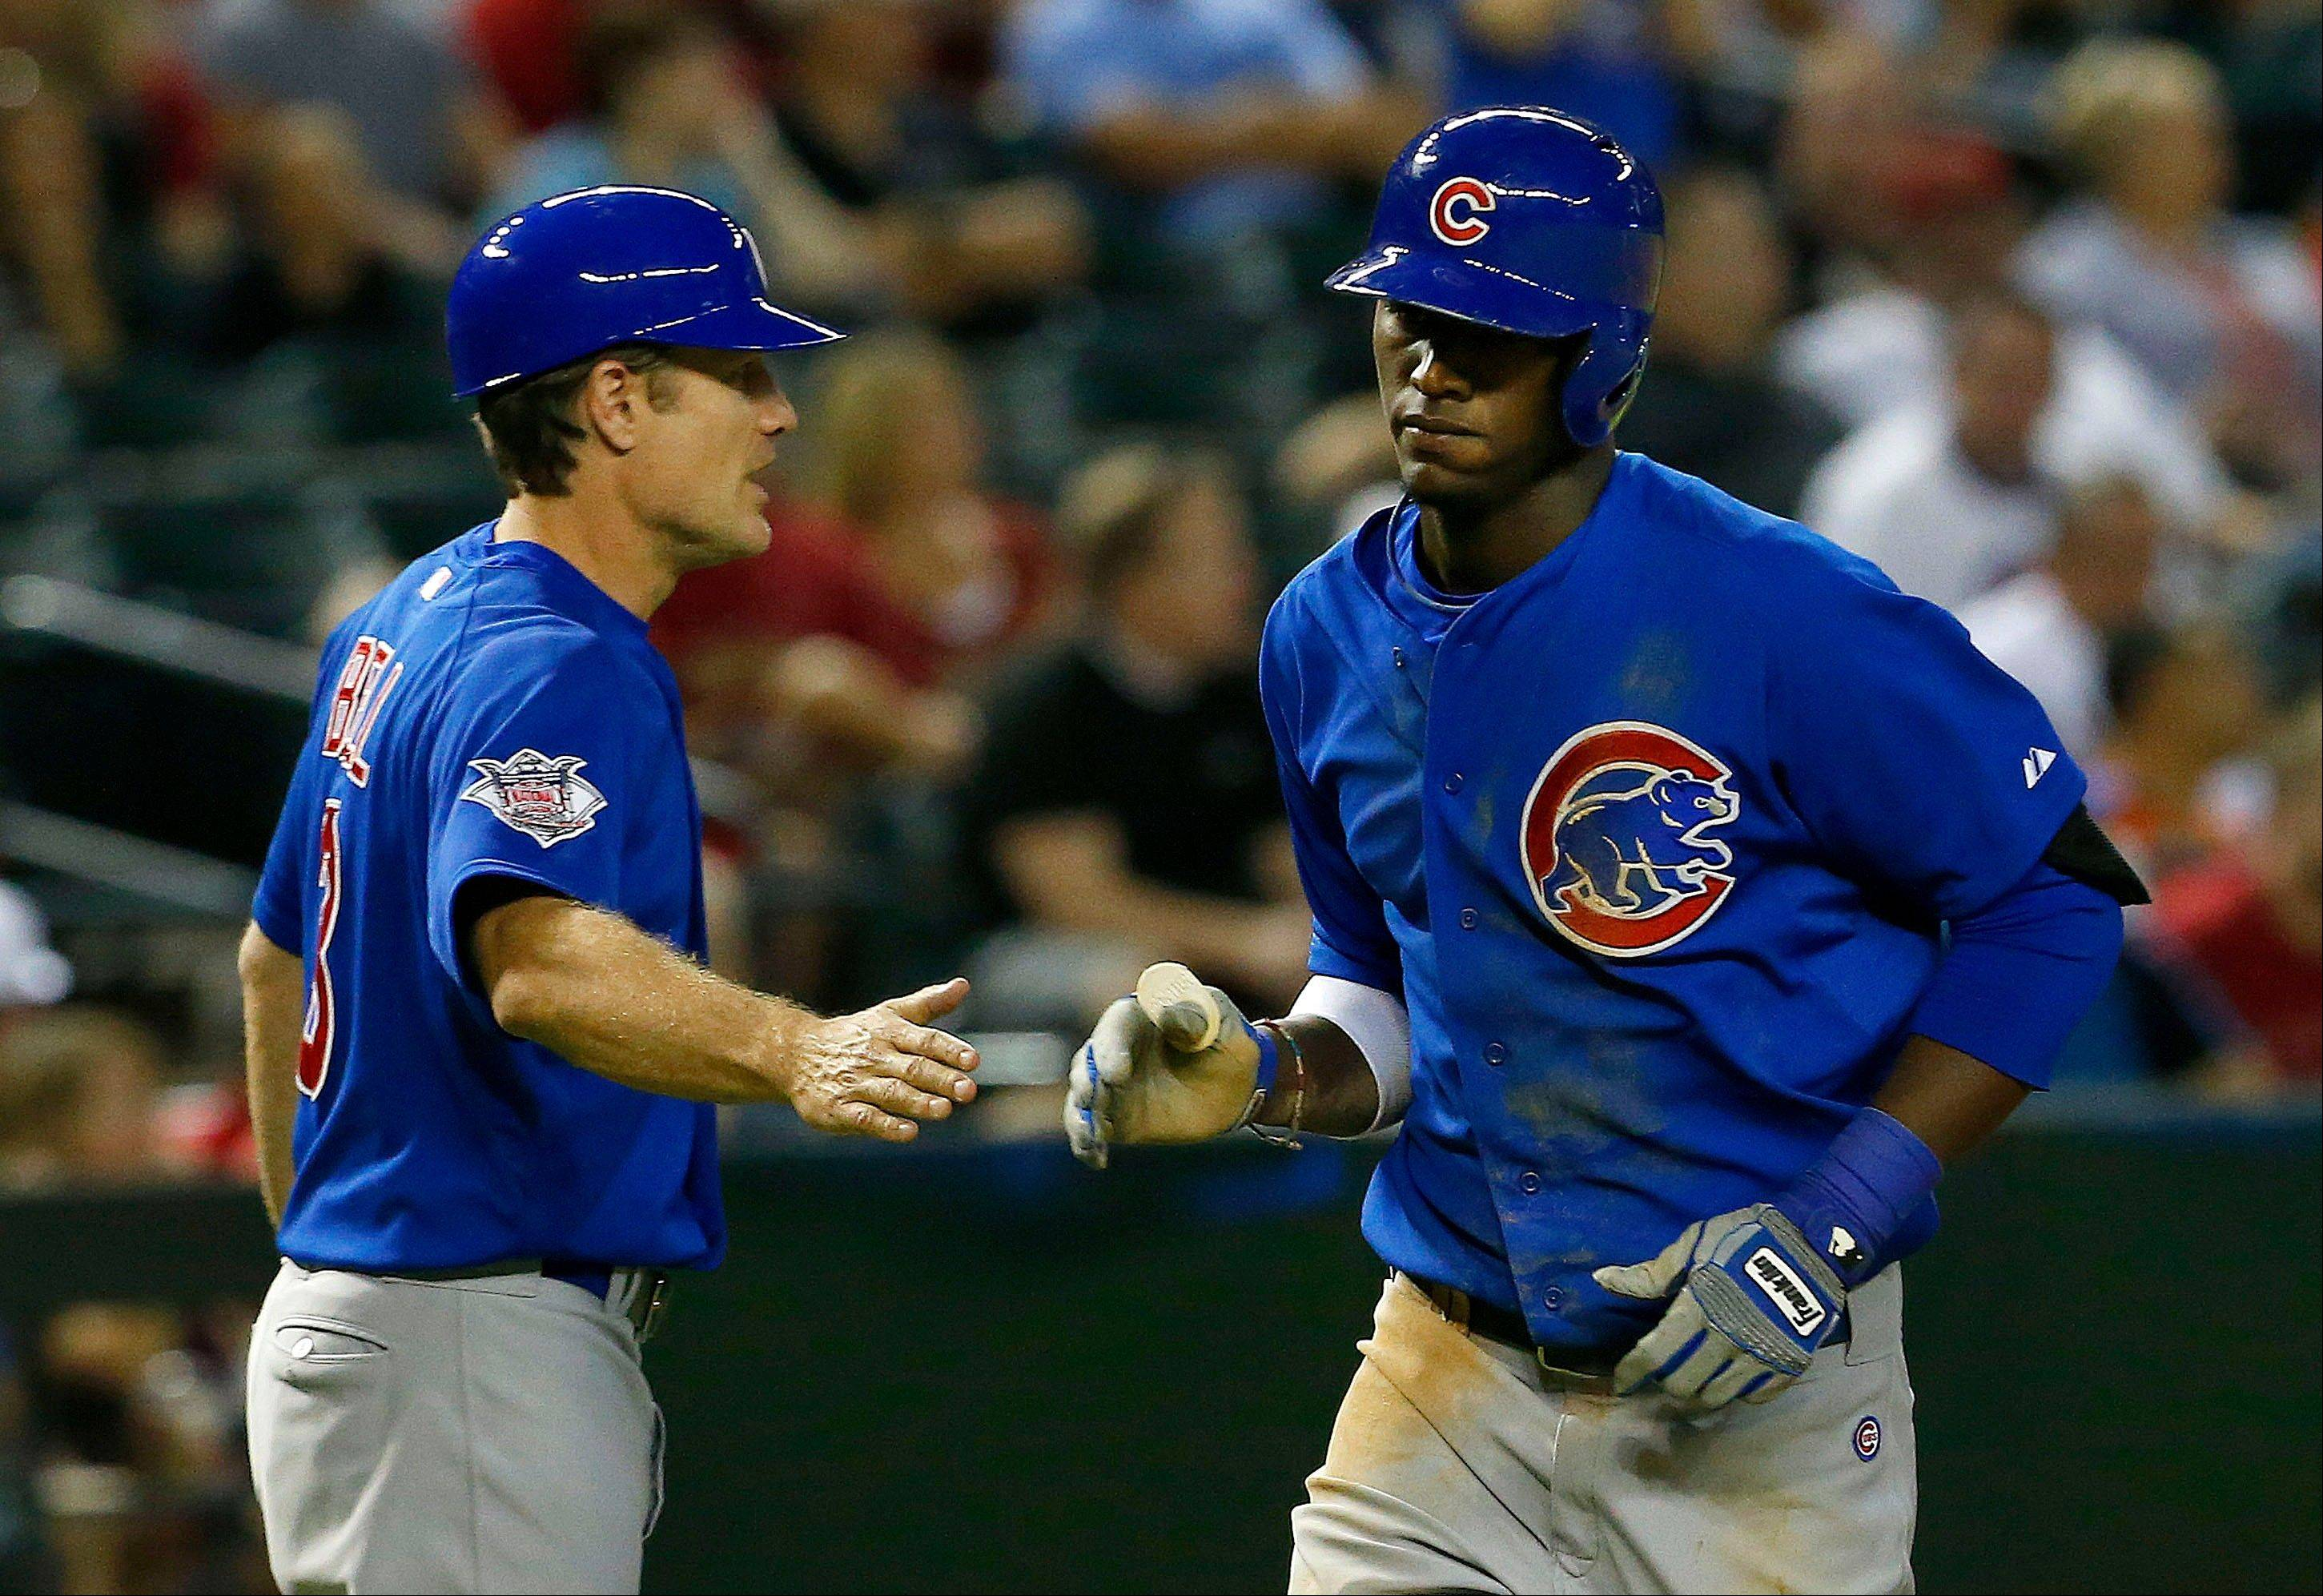 The Cubs' Junior Lake, right, shakes hands with third base coach David Bell after Lake's 2-run home run against the Arizona Diamondbacks in the fifth inning Monday in Phoenix.